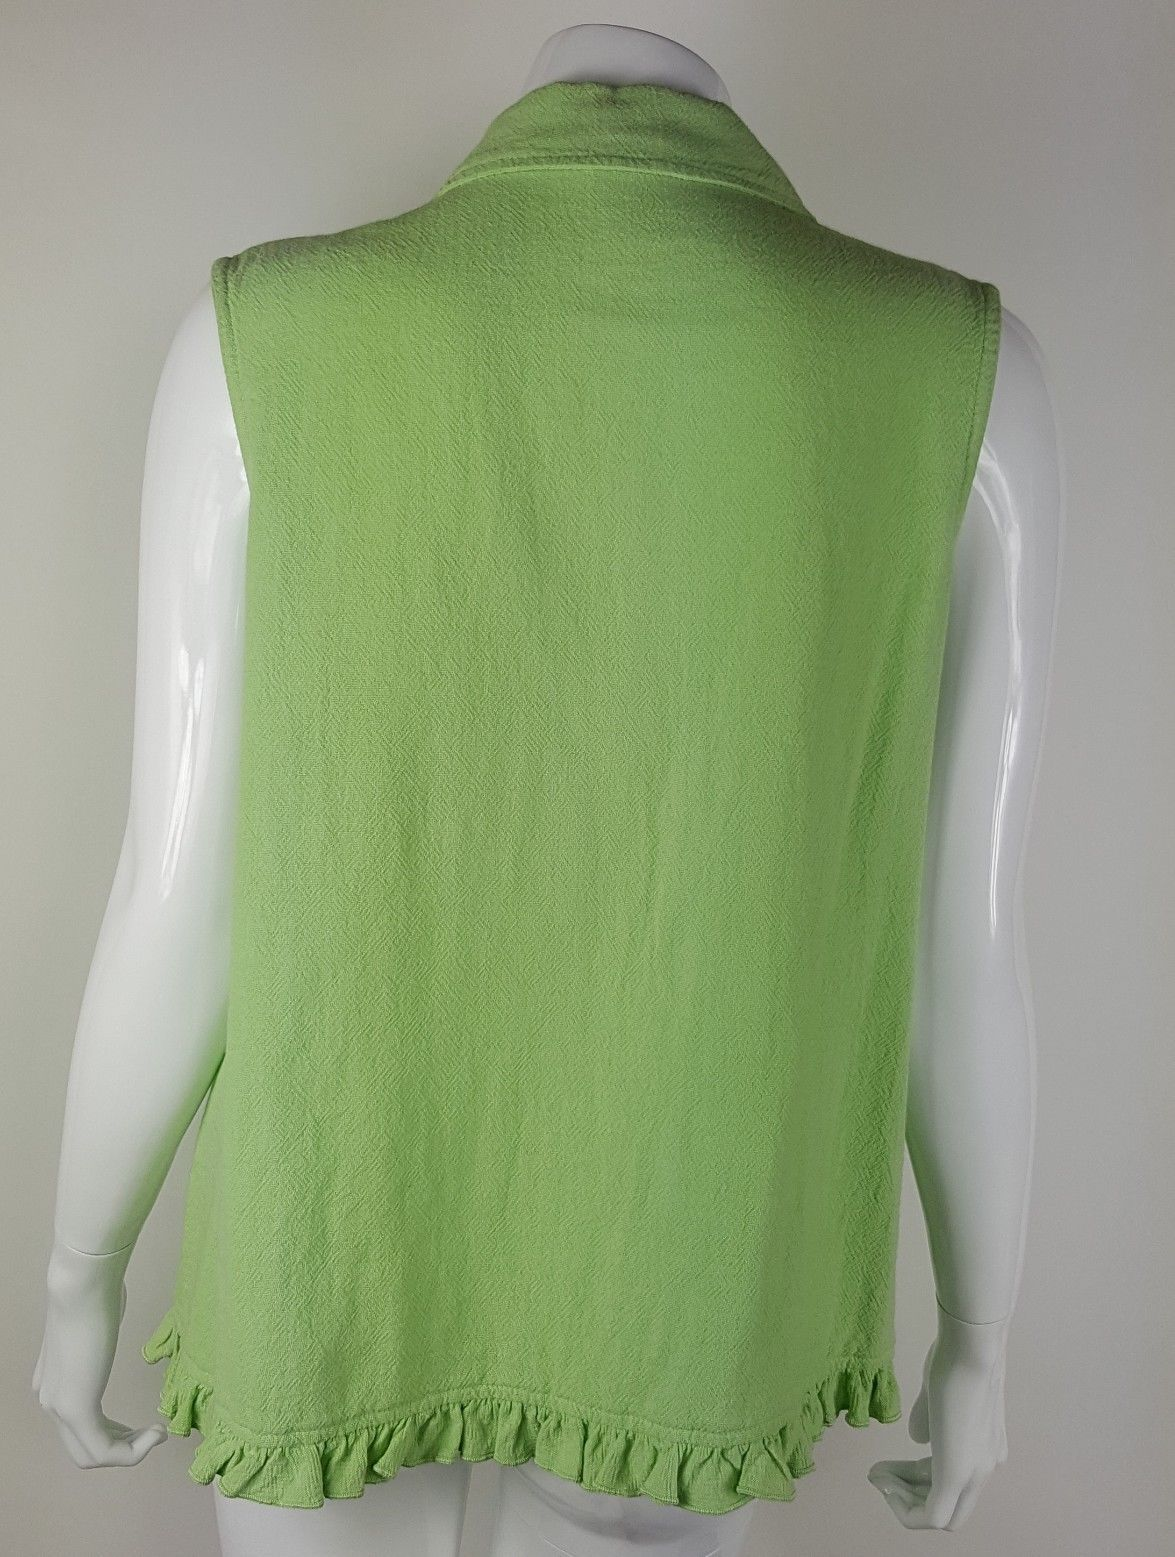 Focus Womens Medium Lime Green Button Up Tank Top Textured Cotton EUC USA Made